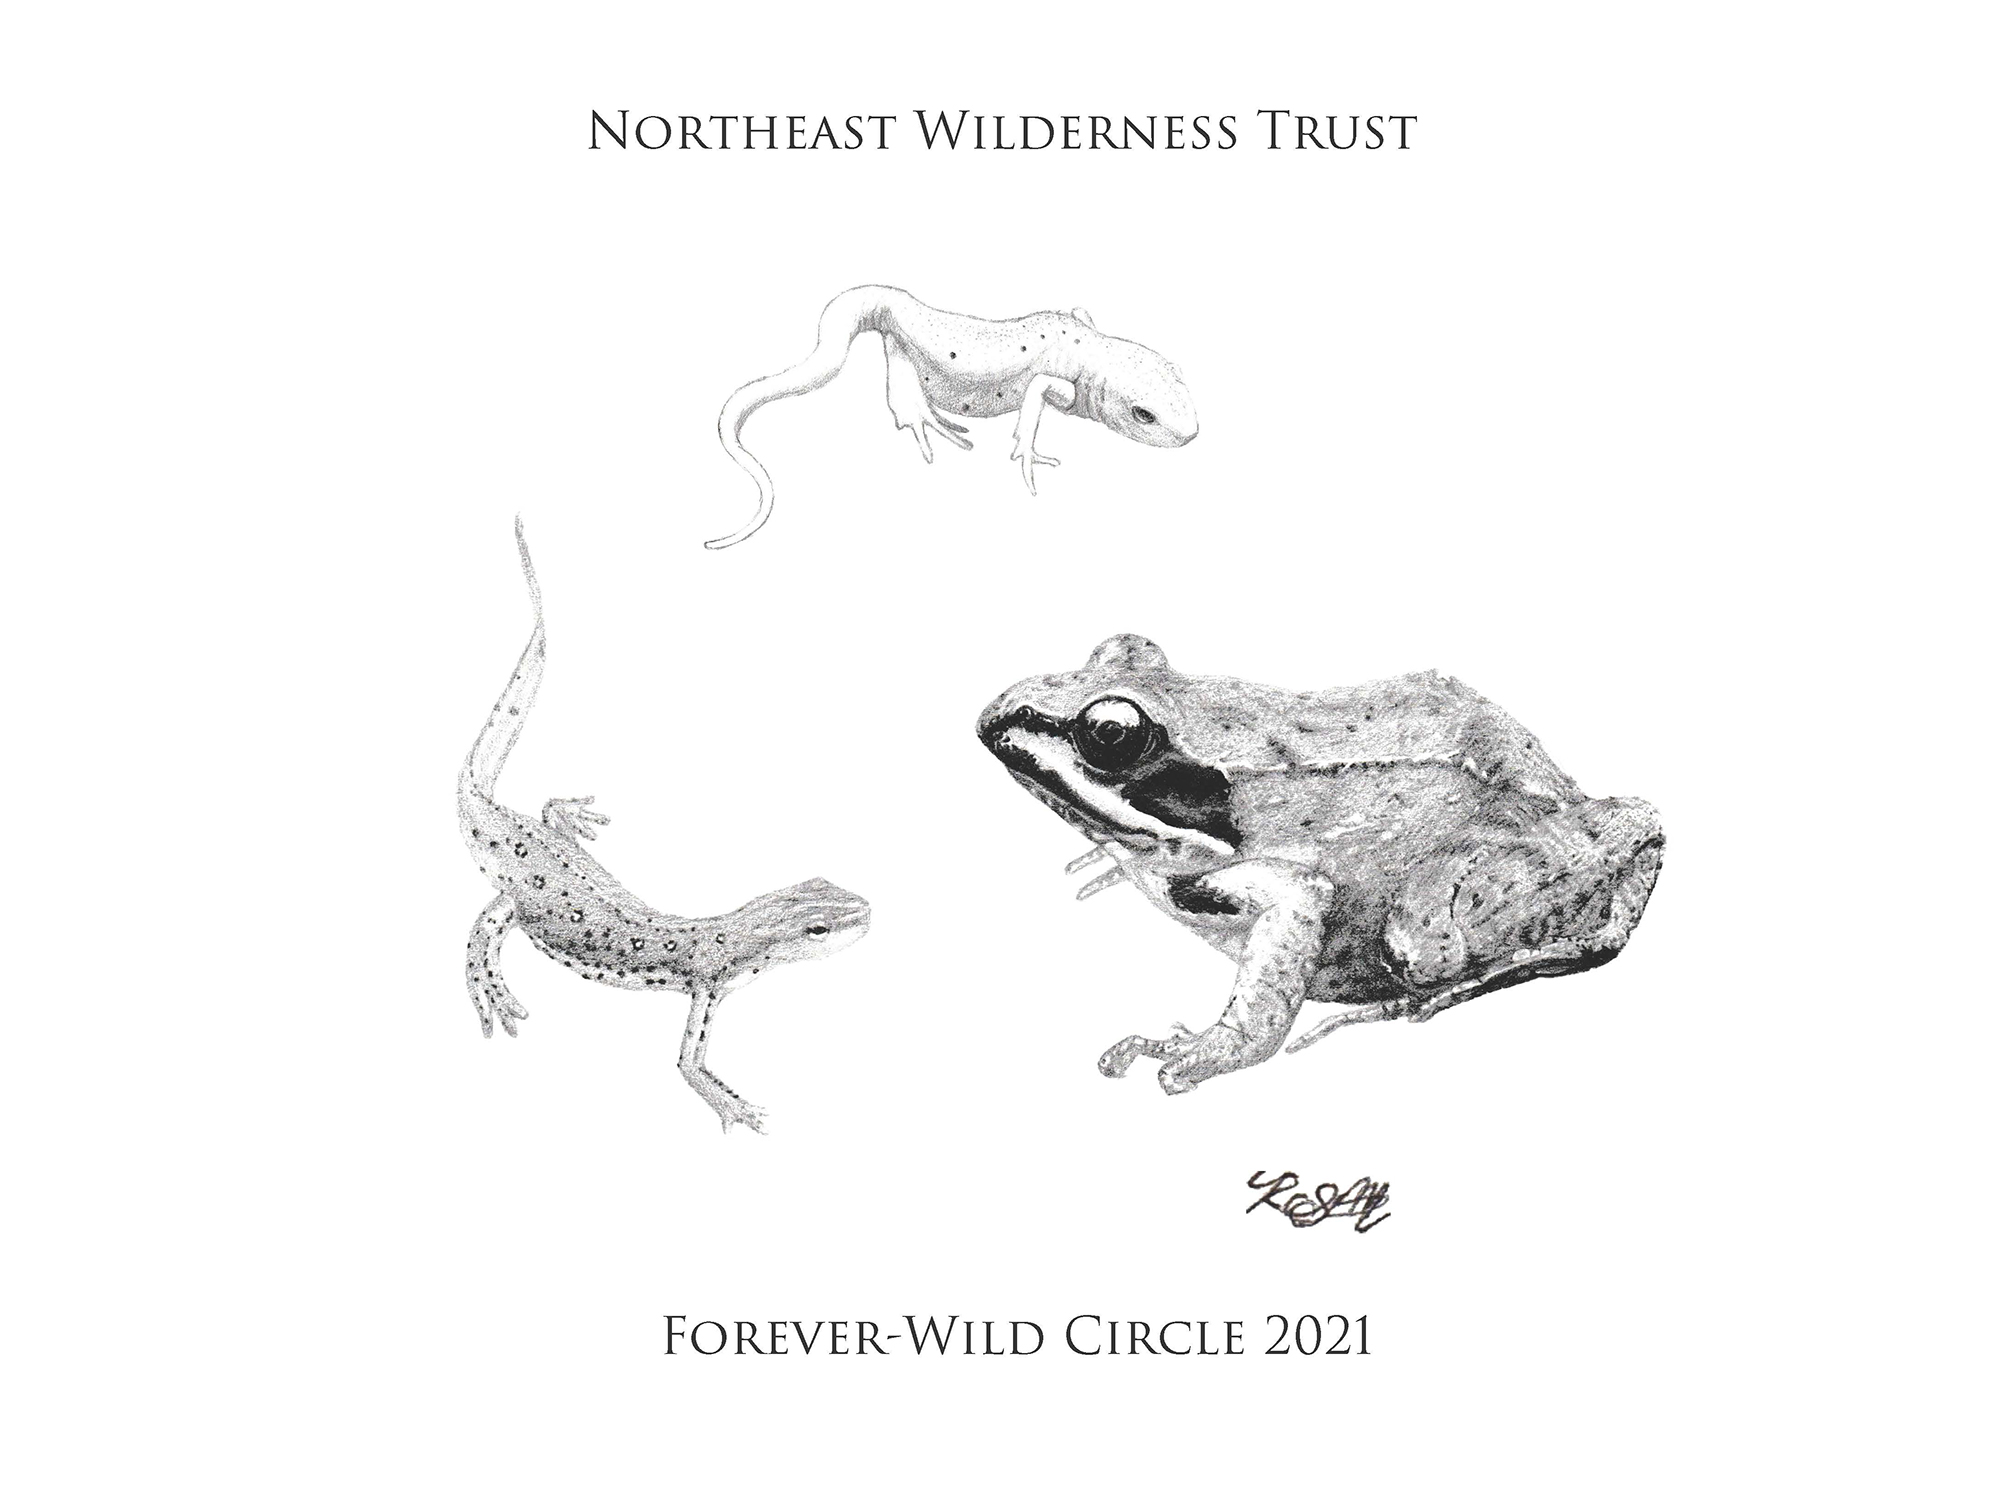 Circle of three amphibians - a wood frog, a newt, and a red eft.